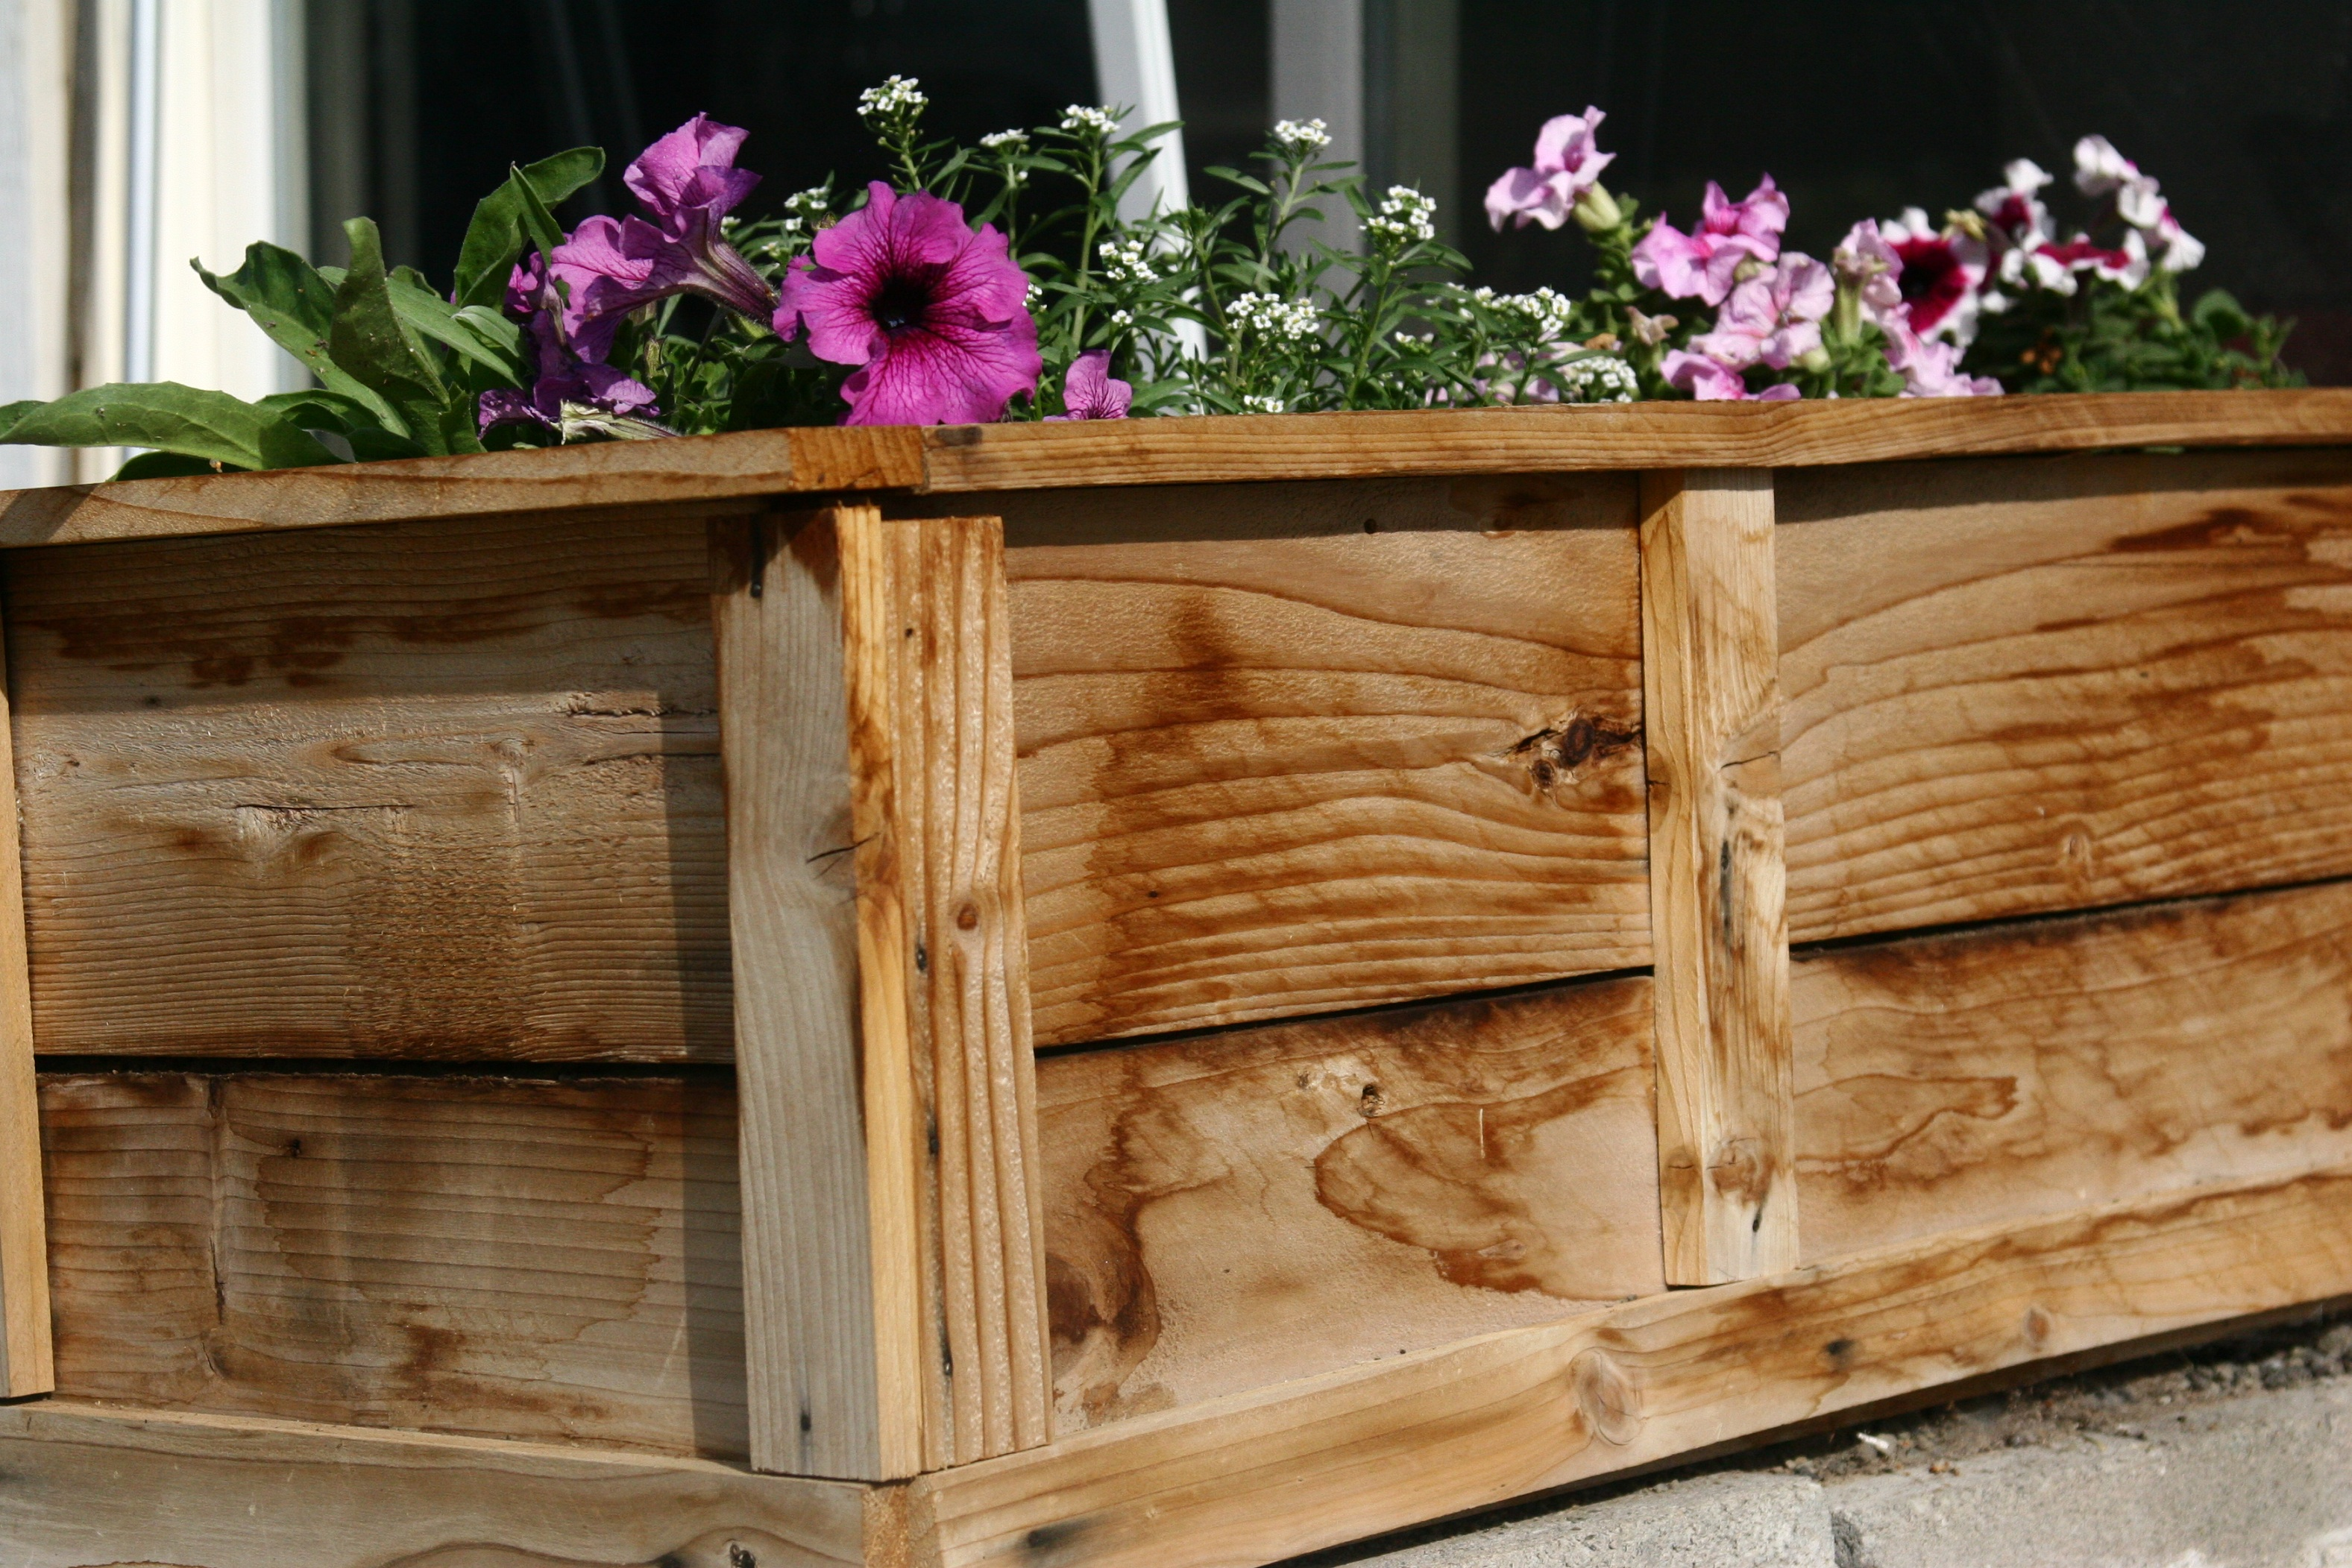 Ana white raised flower planter beds diy projects for Raised flower bed plans